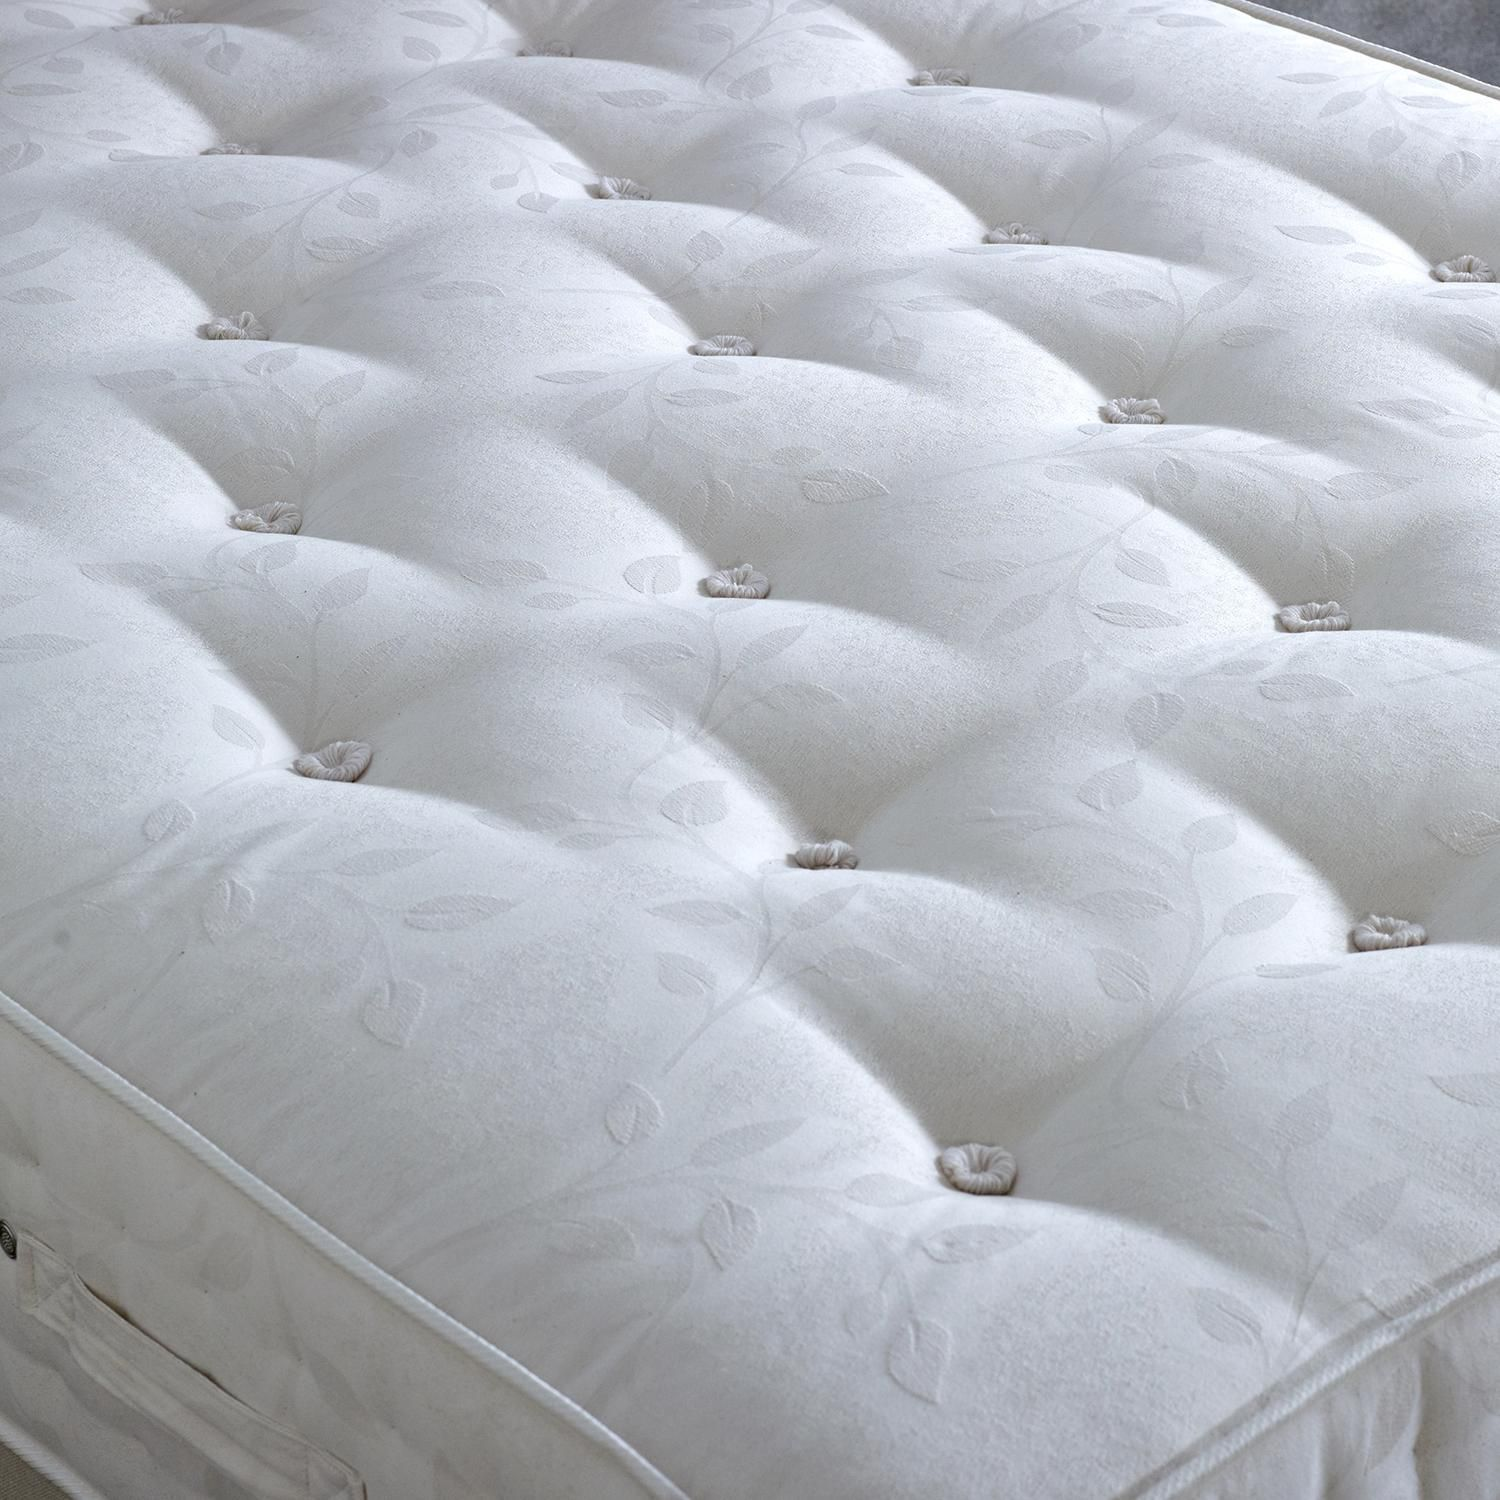 Ambassador 3000 Pocket Mattress In 2020 Mattress Mattress Brands